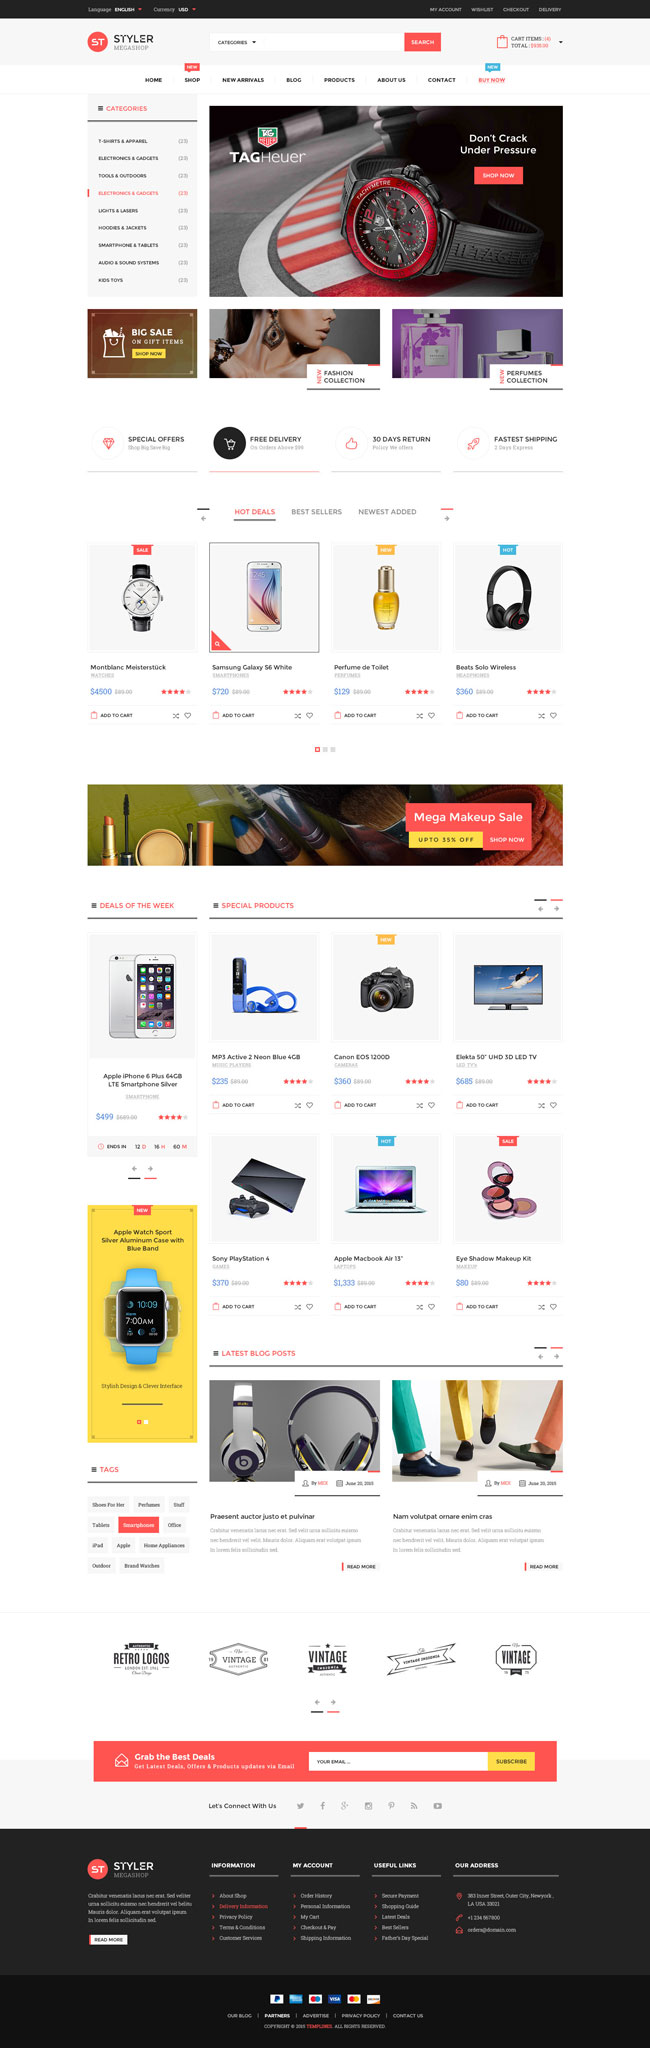 Styler-Mega-Shop-PSD-Template